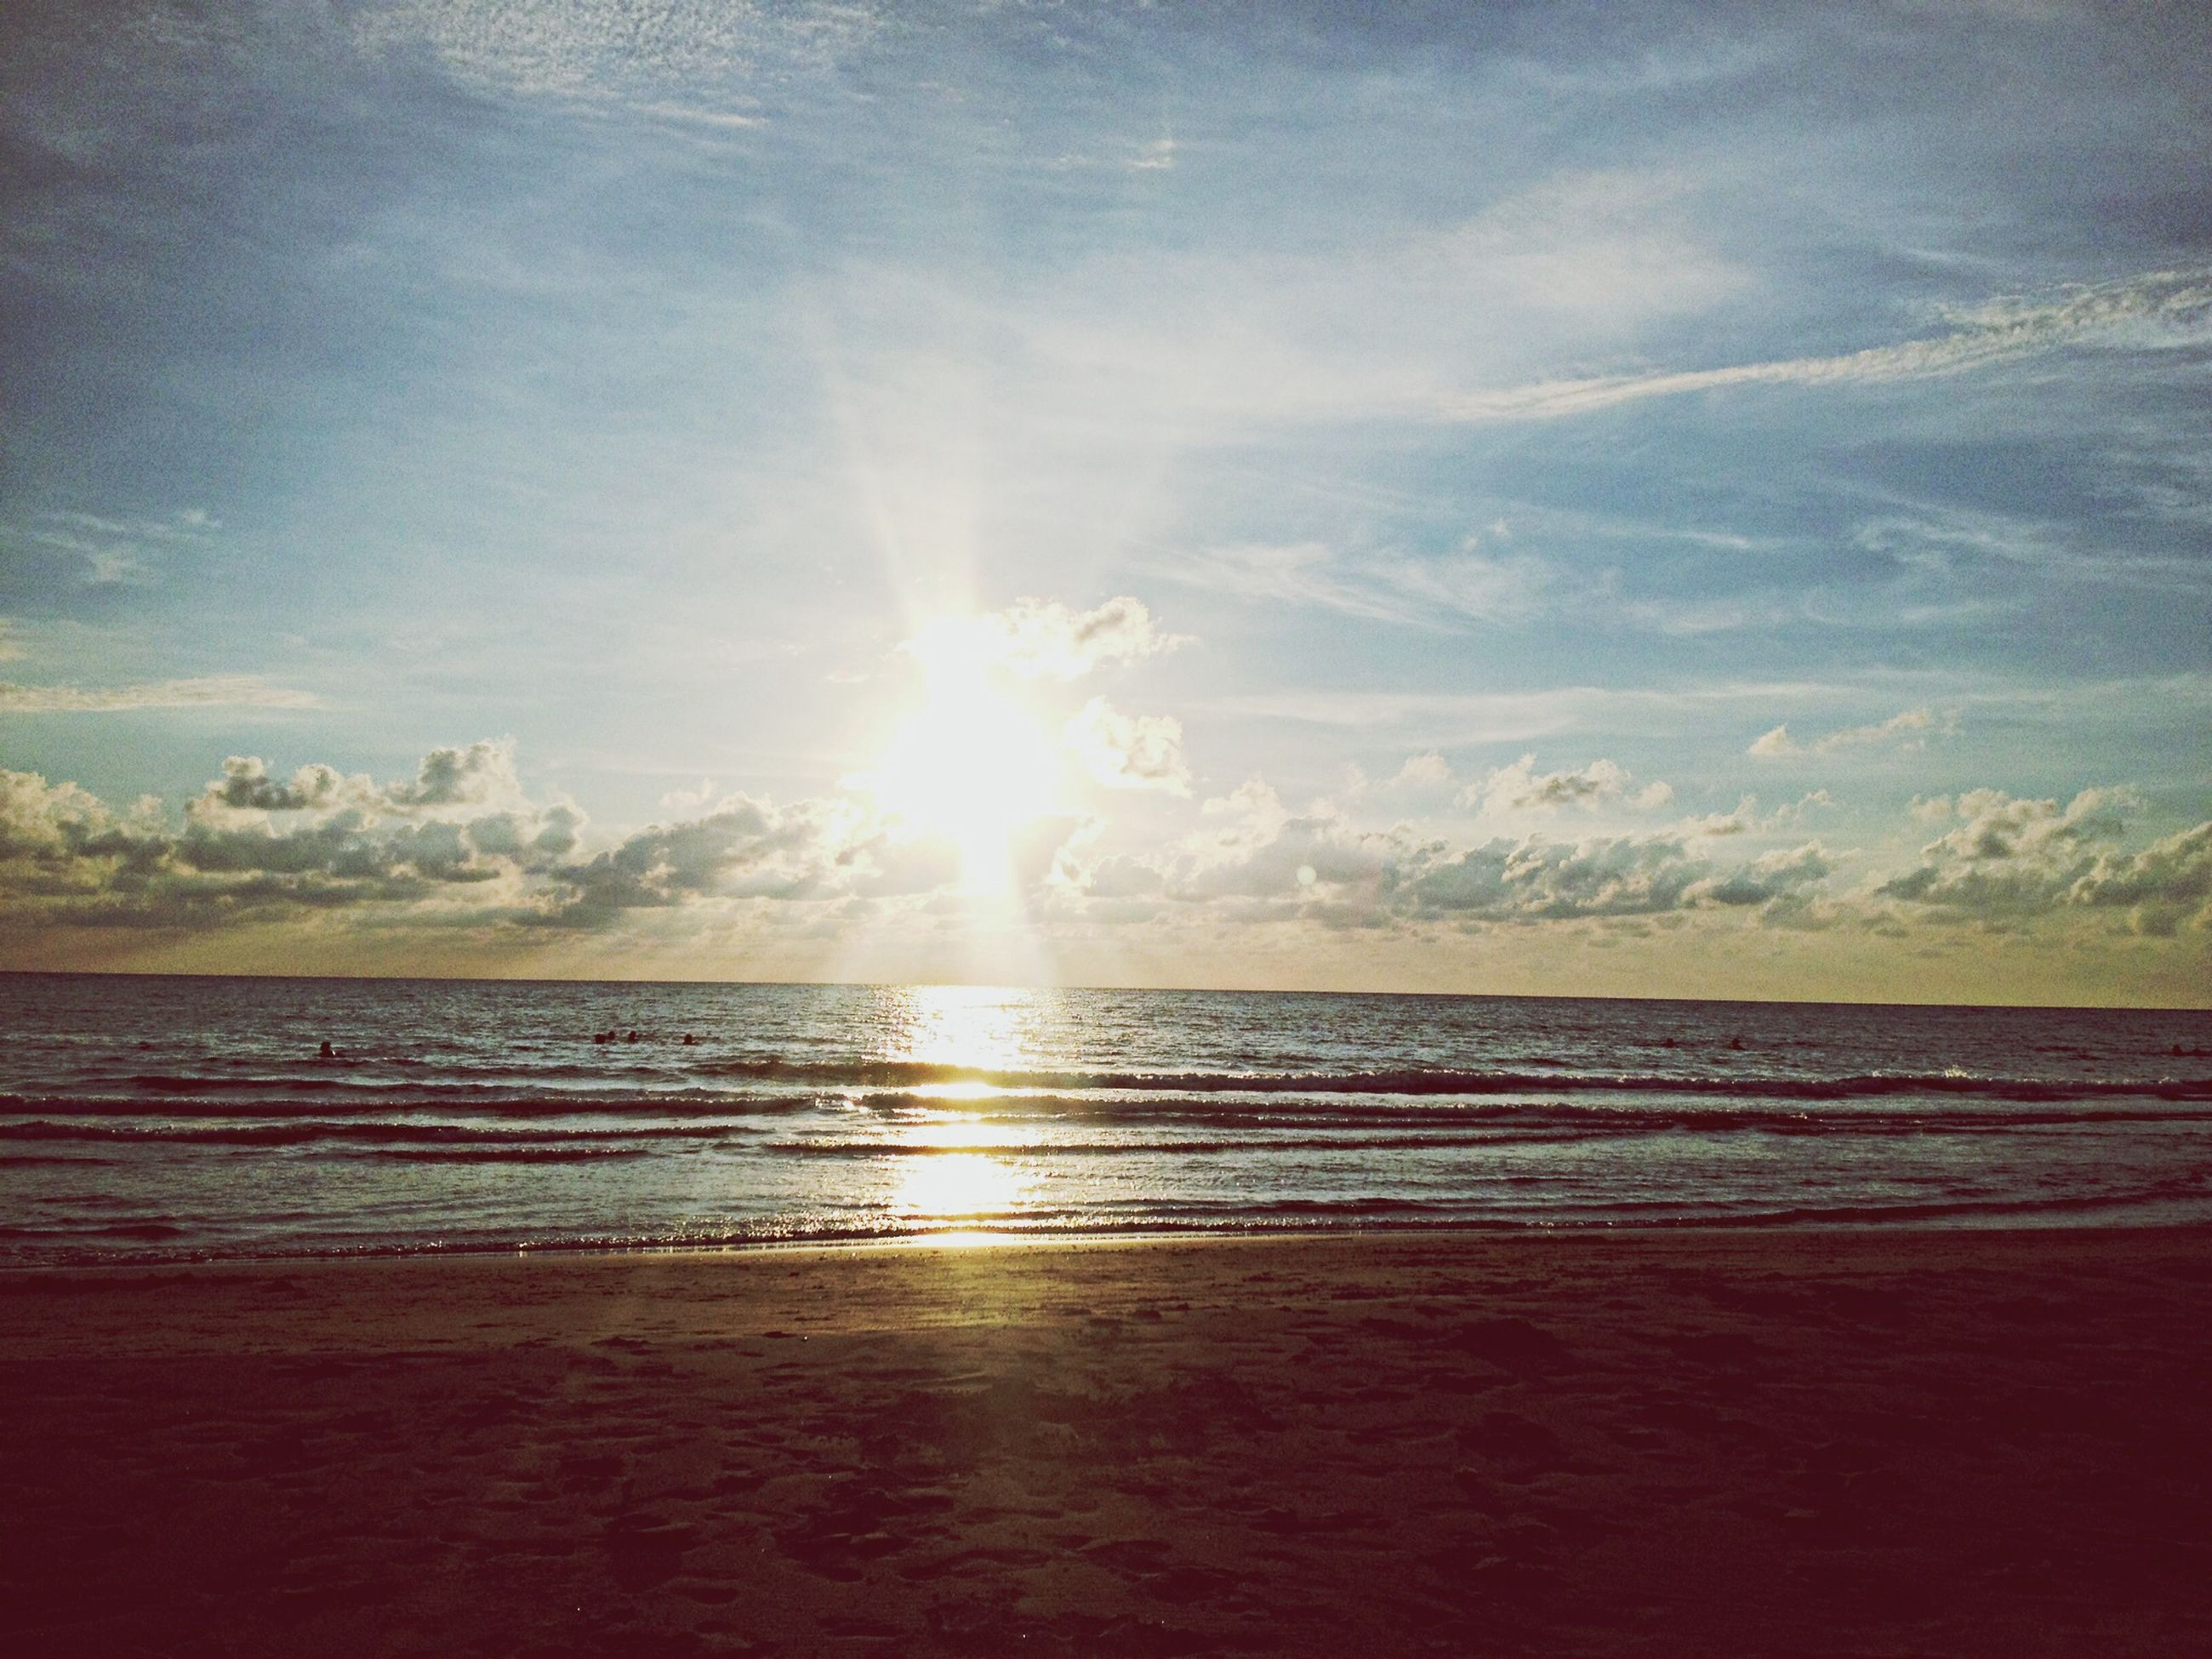 water, sea, beach, scenics, tranquil scene, sun, sky, horizon over water, tranquility, beauty in nature, shore, reflection, sunset, sunlight, nature, idyllic, cloud - sky, sand, sunbeam, outdoors